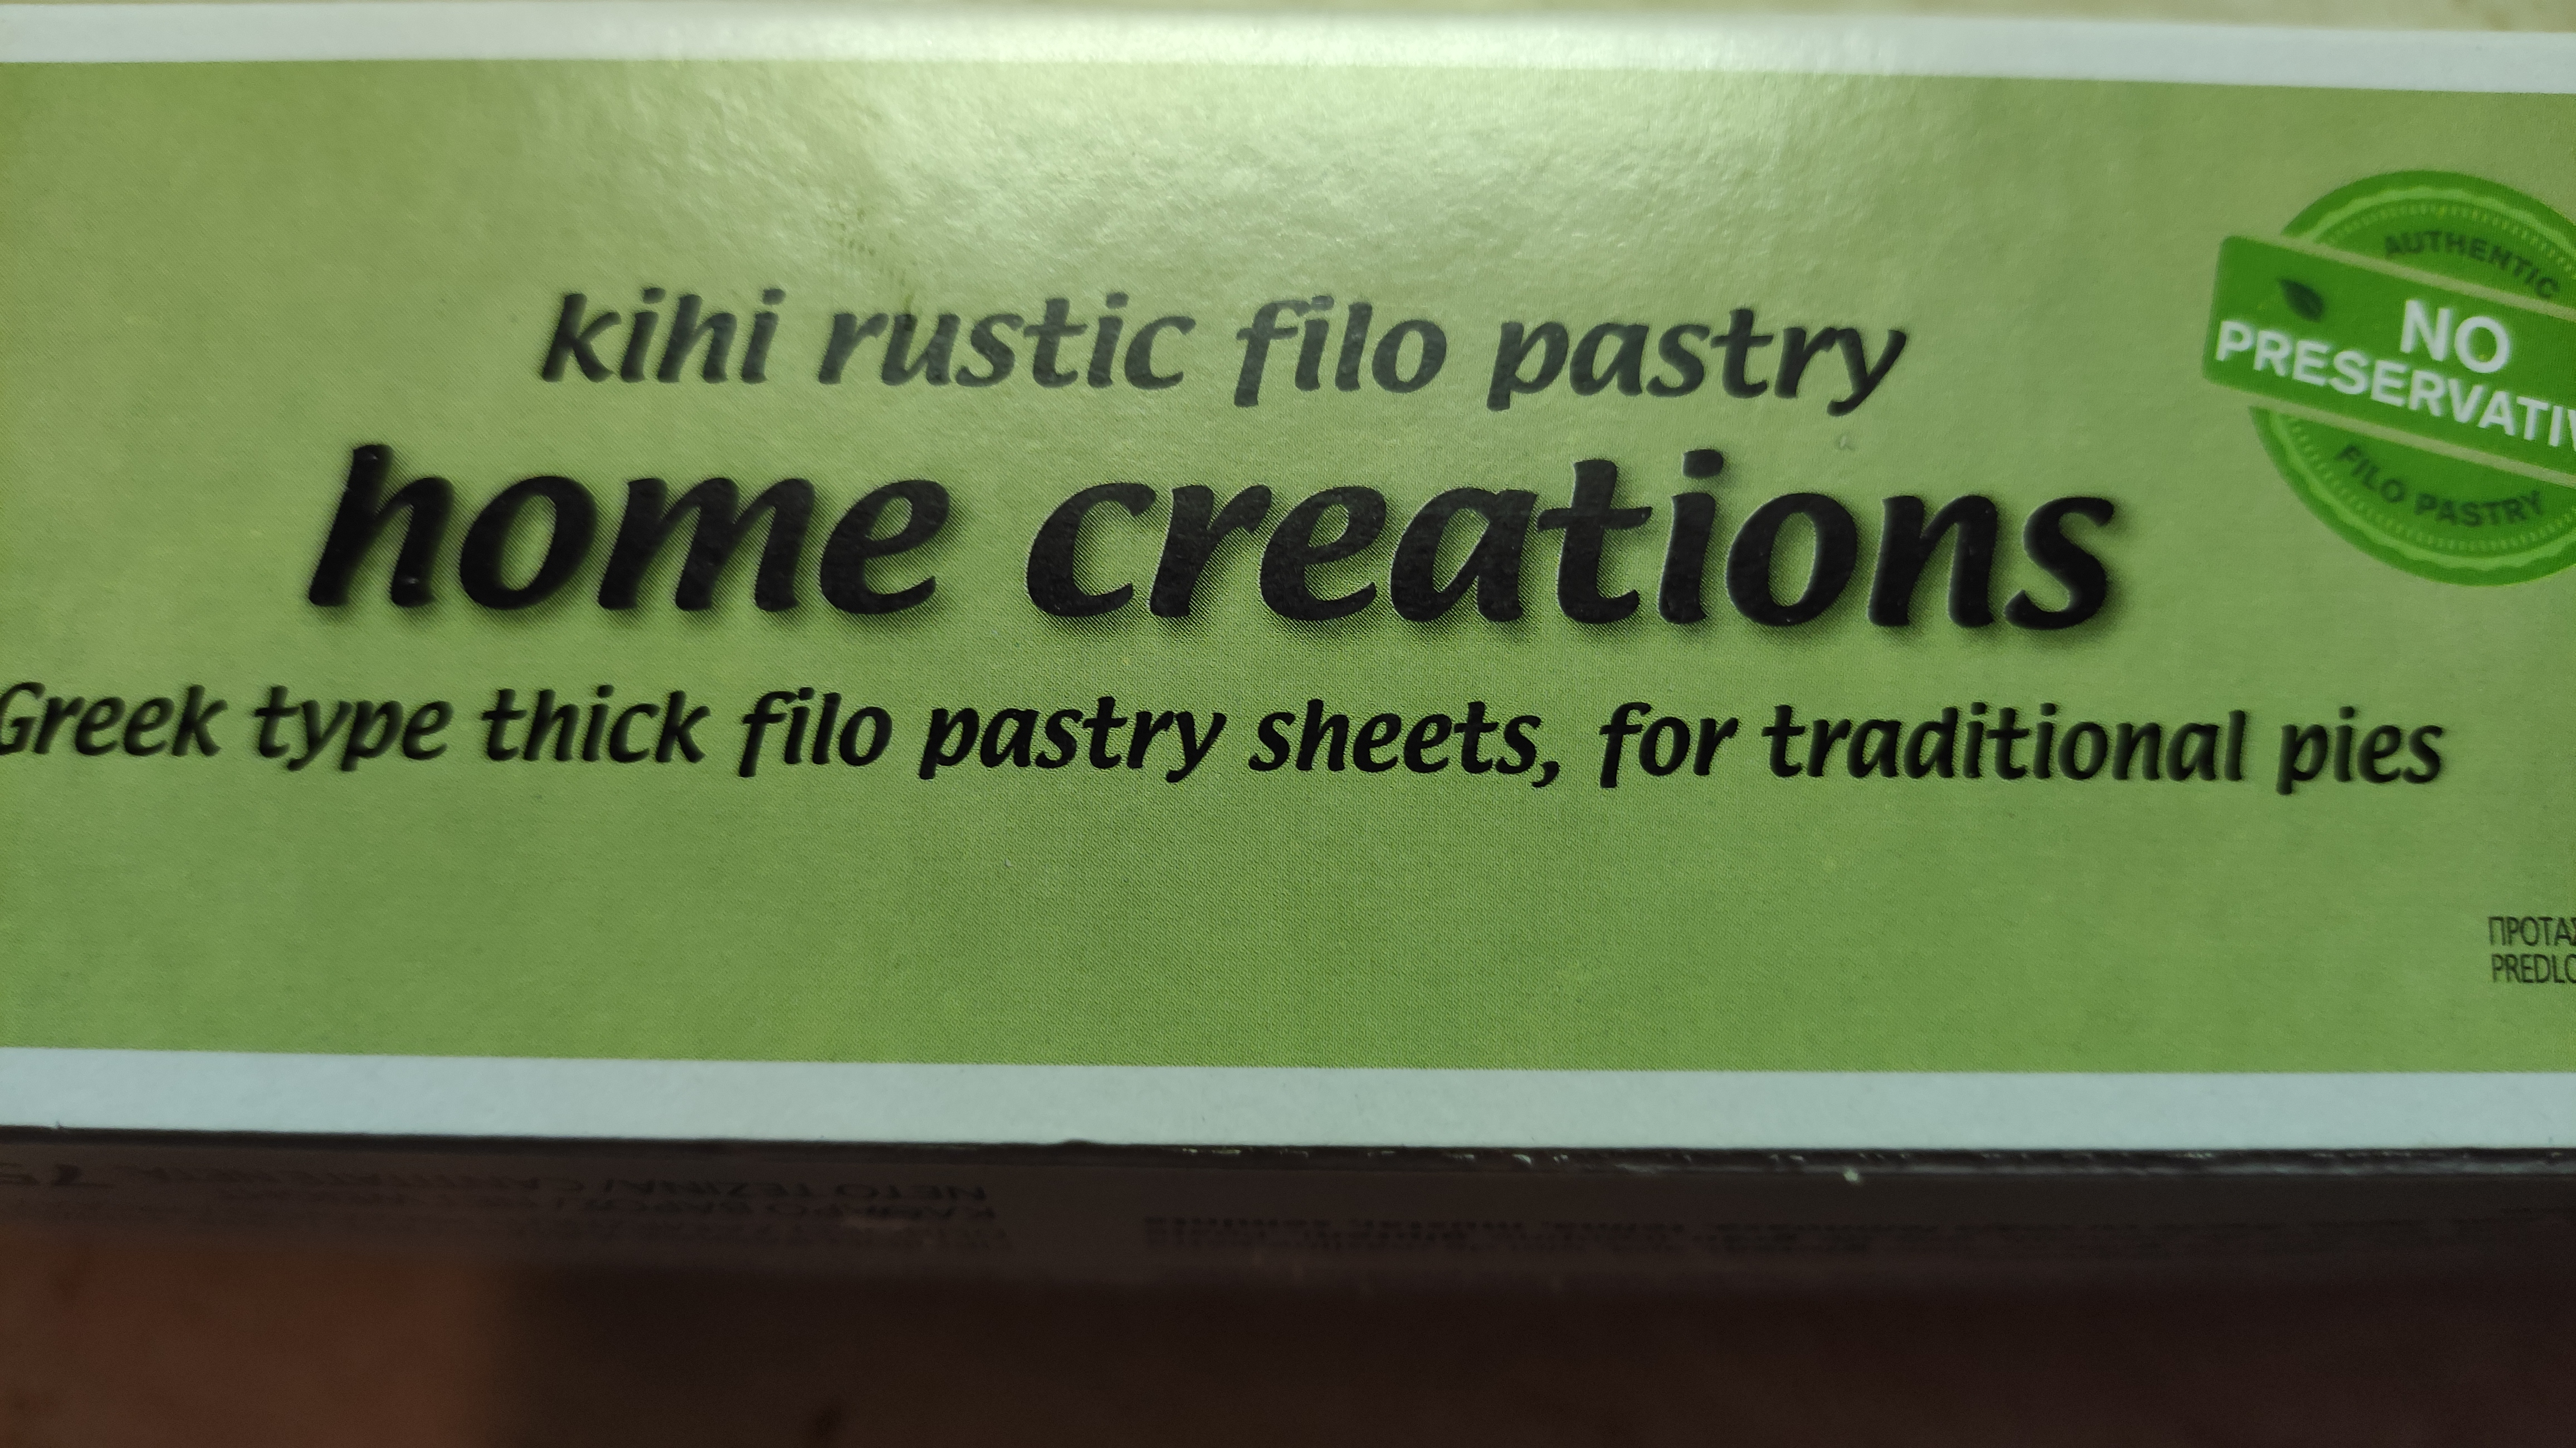 Traditional filo pastry